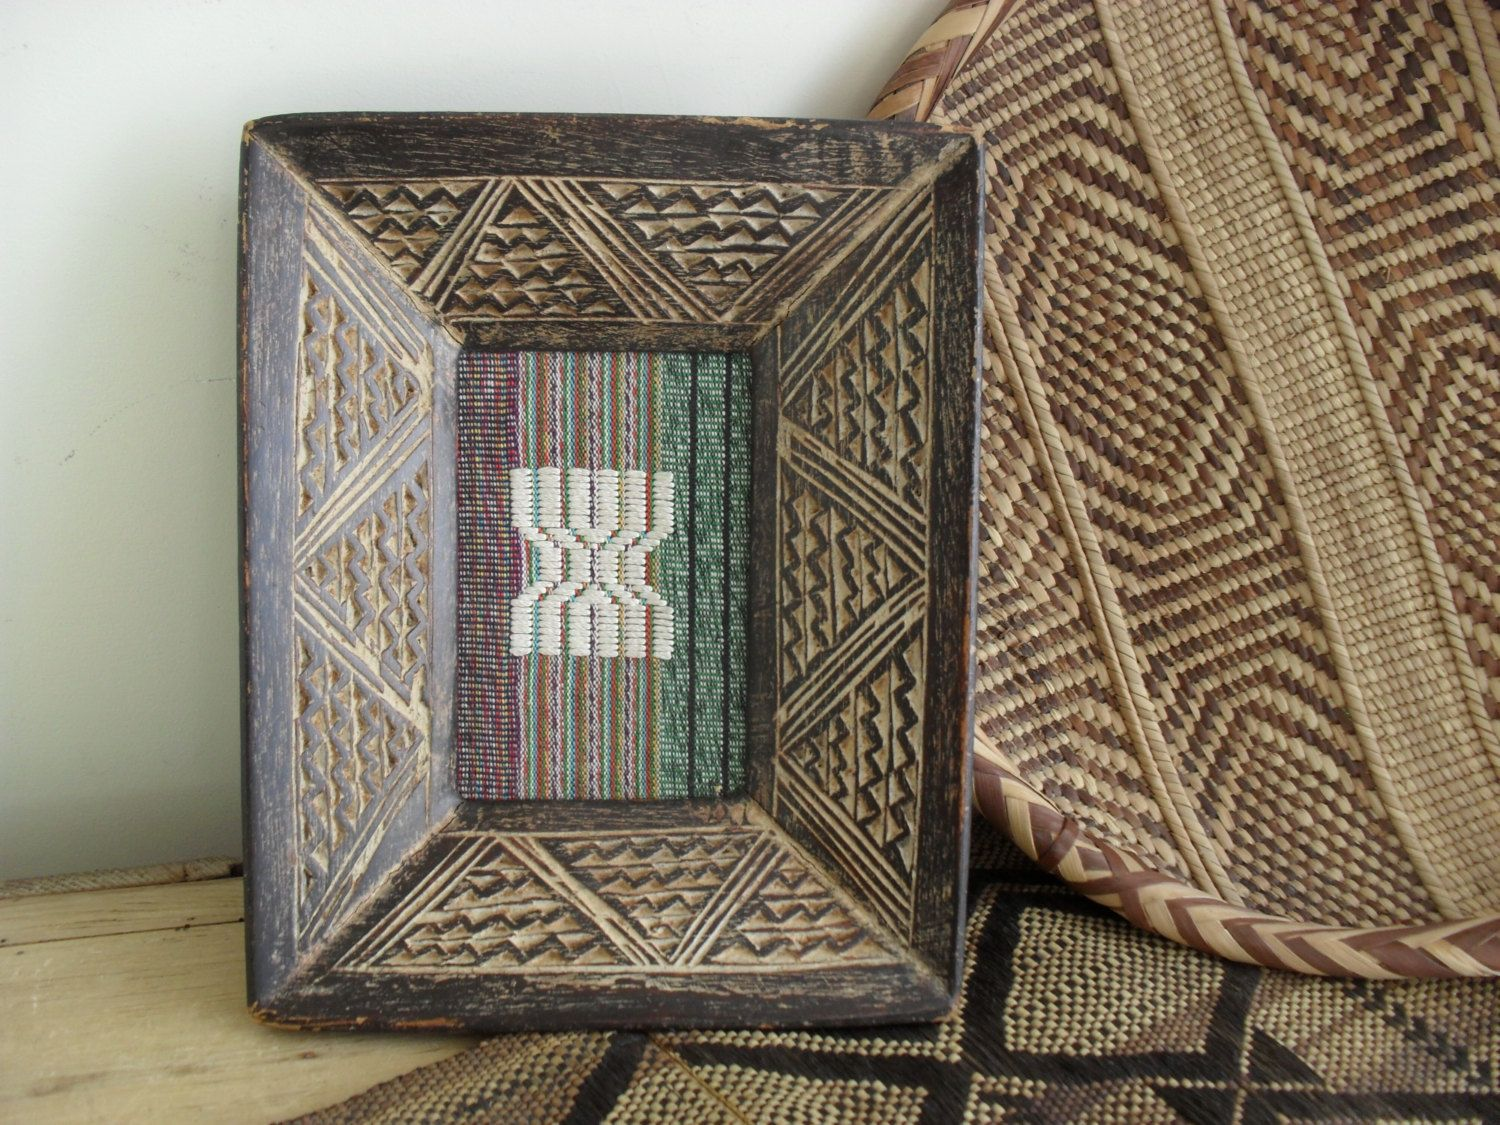 African art fabric picture vintage african decor hand carved african picture african fabric picture vintage african art hand carved wooden frame woven fabric picture ethnic jeuxipadfo Images